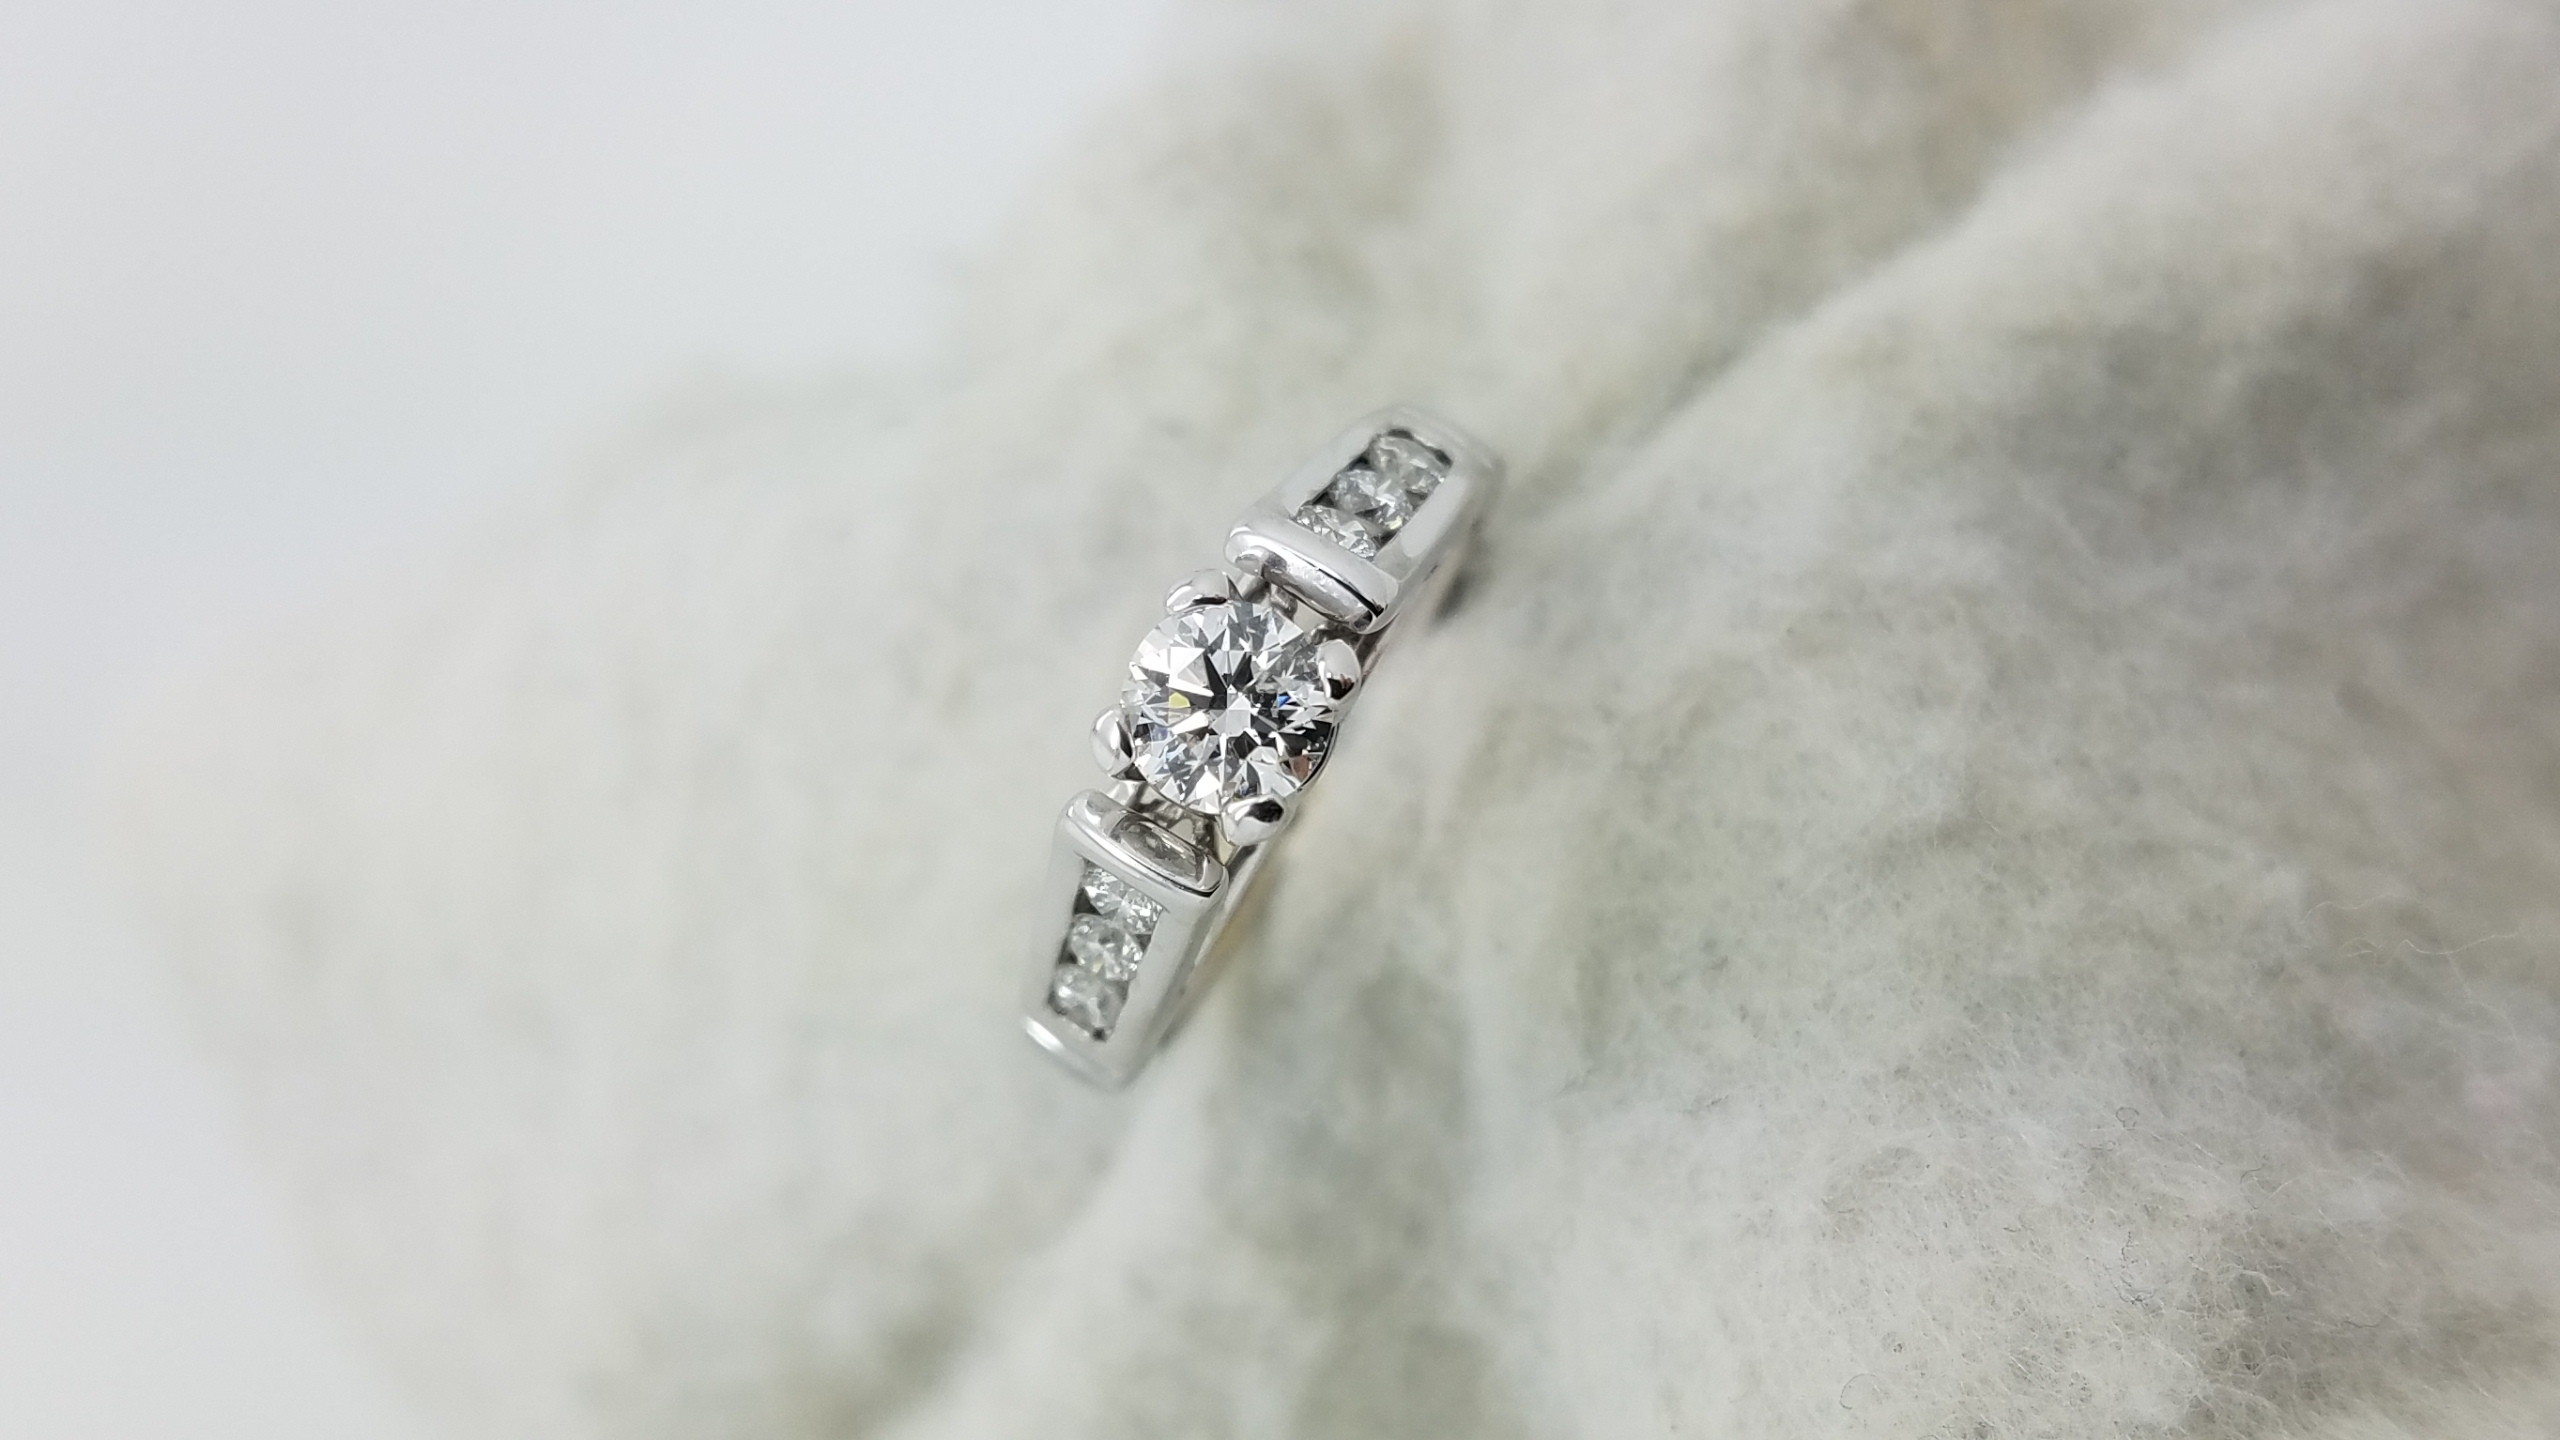 18K	White Gold	 Cathedral	0.75	ct.	R	Cut	Diamond	H	VS2	4-prong	Solitaire with Accents	Engagement-Ring